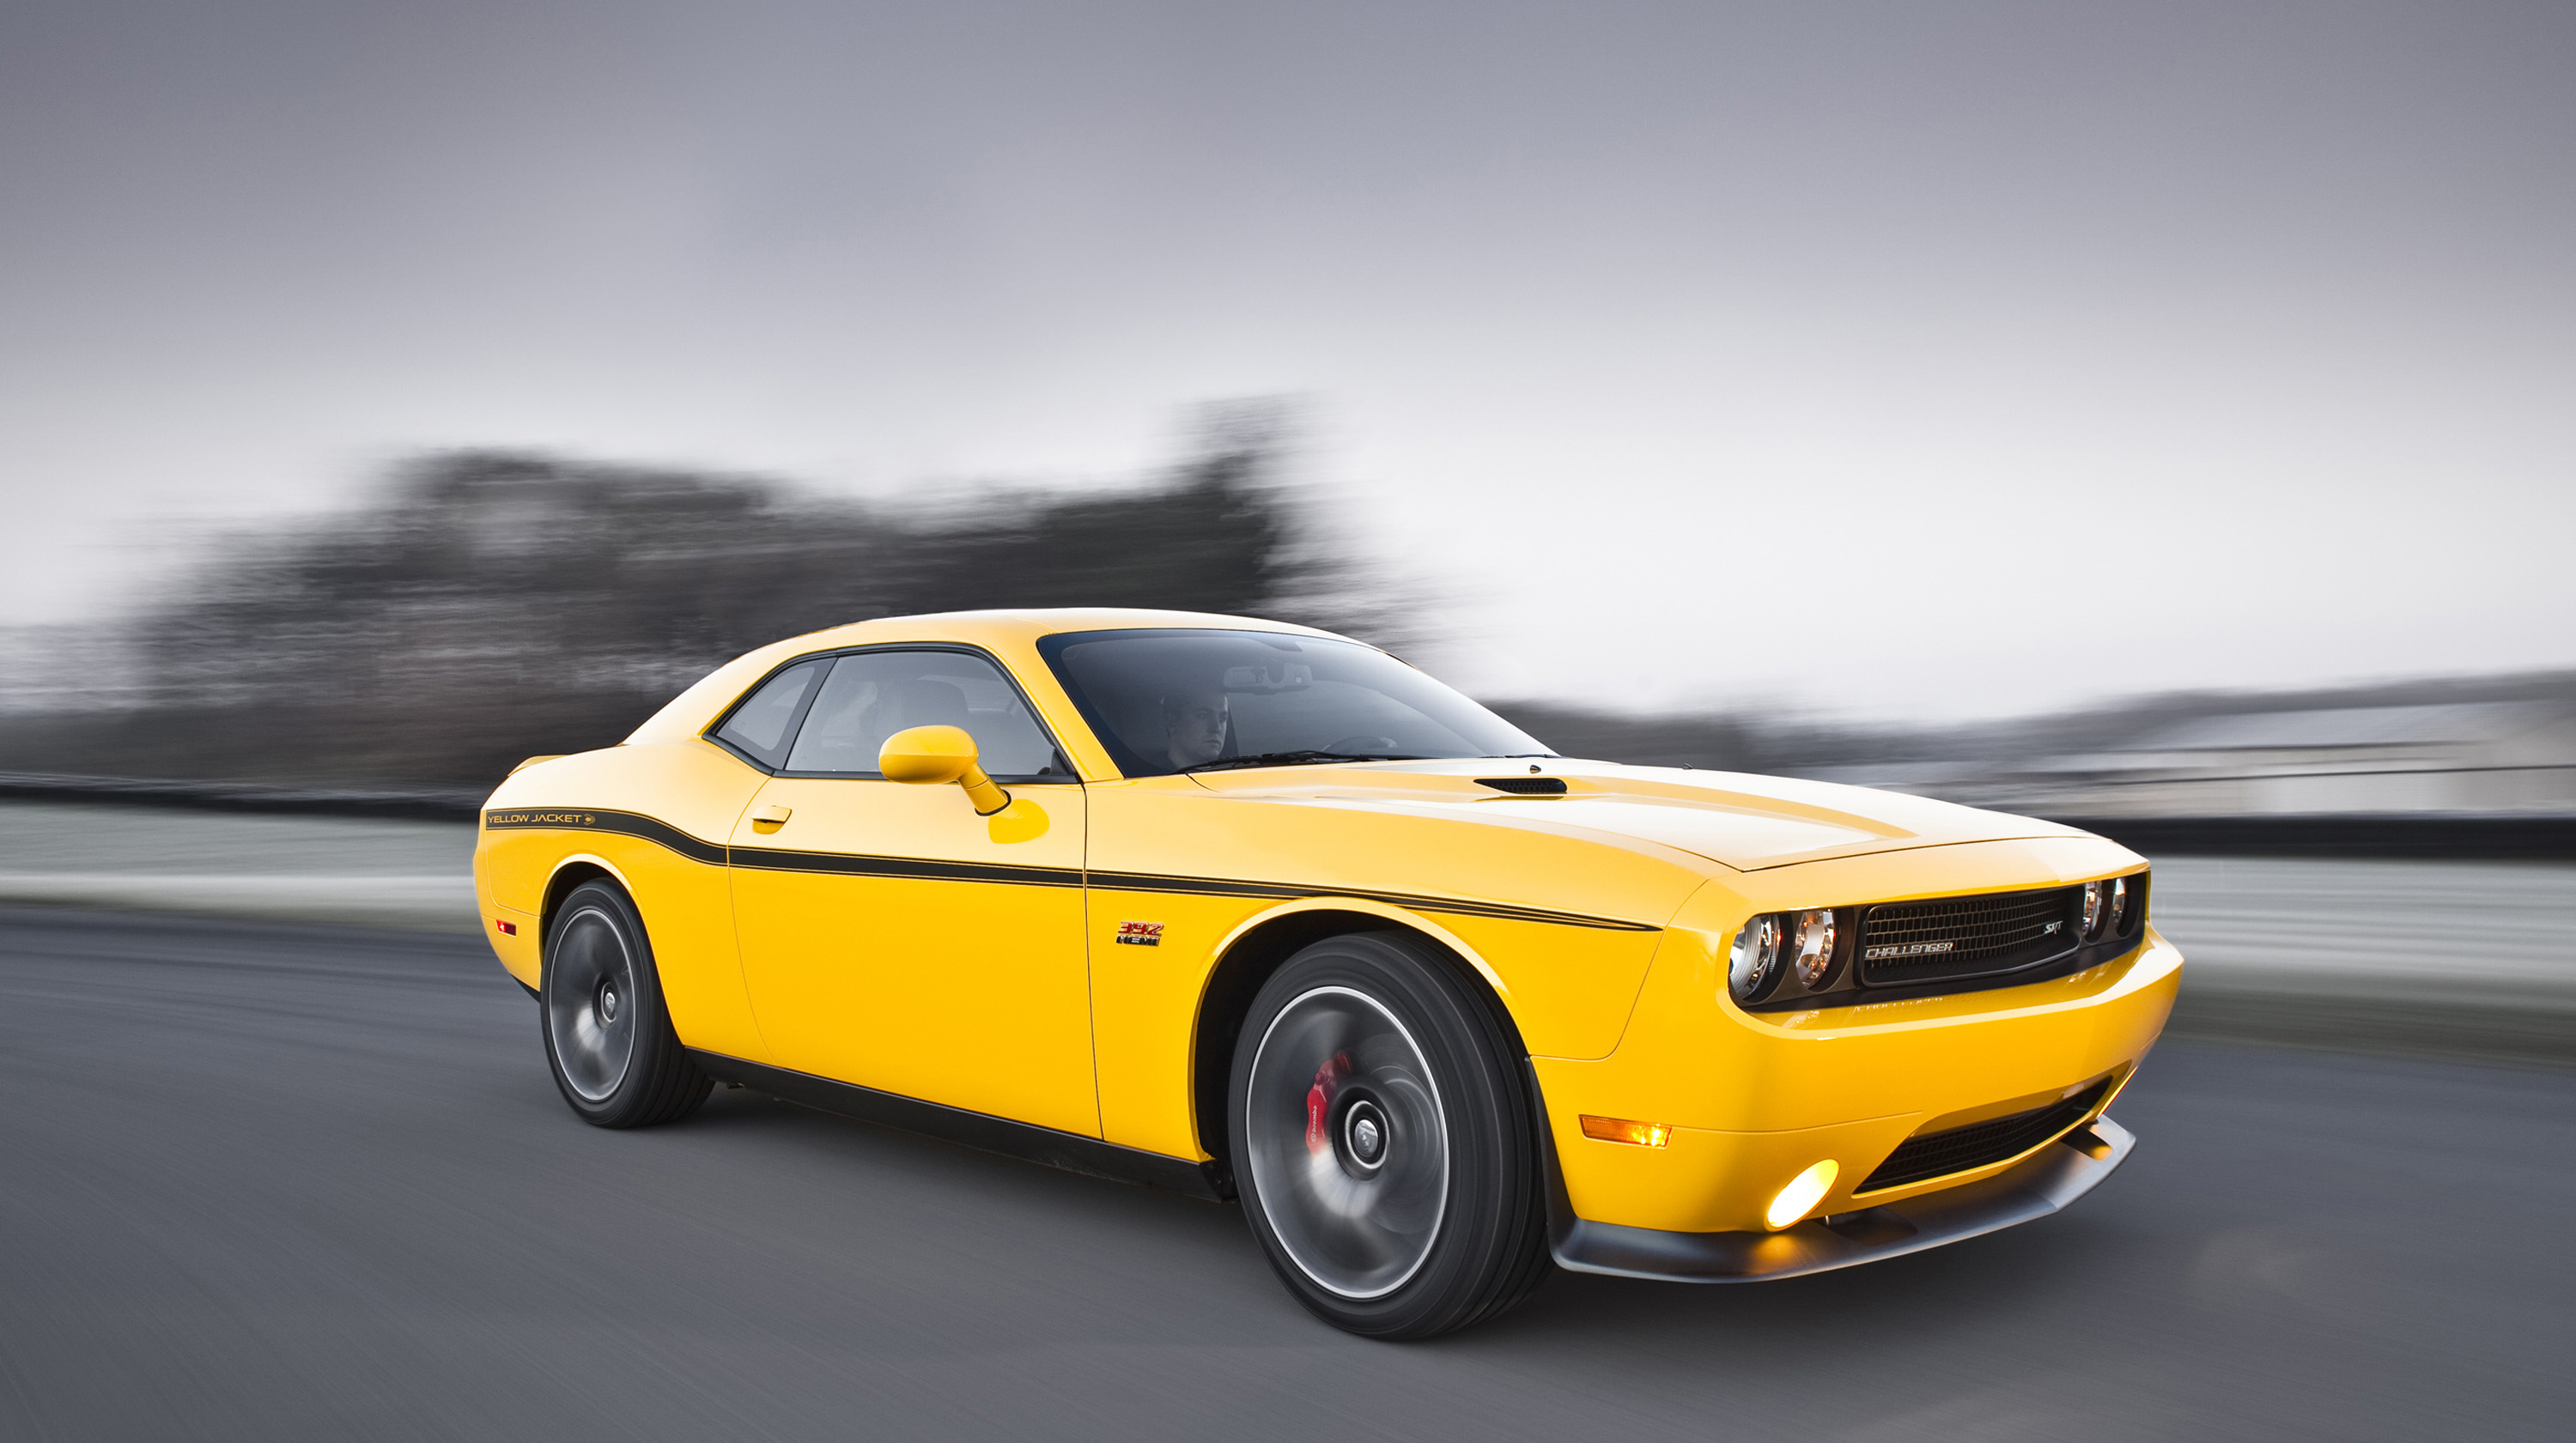 2012 Dodge Challenger Srt8 392 Yellow Jacket Top Speed